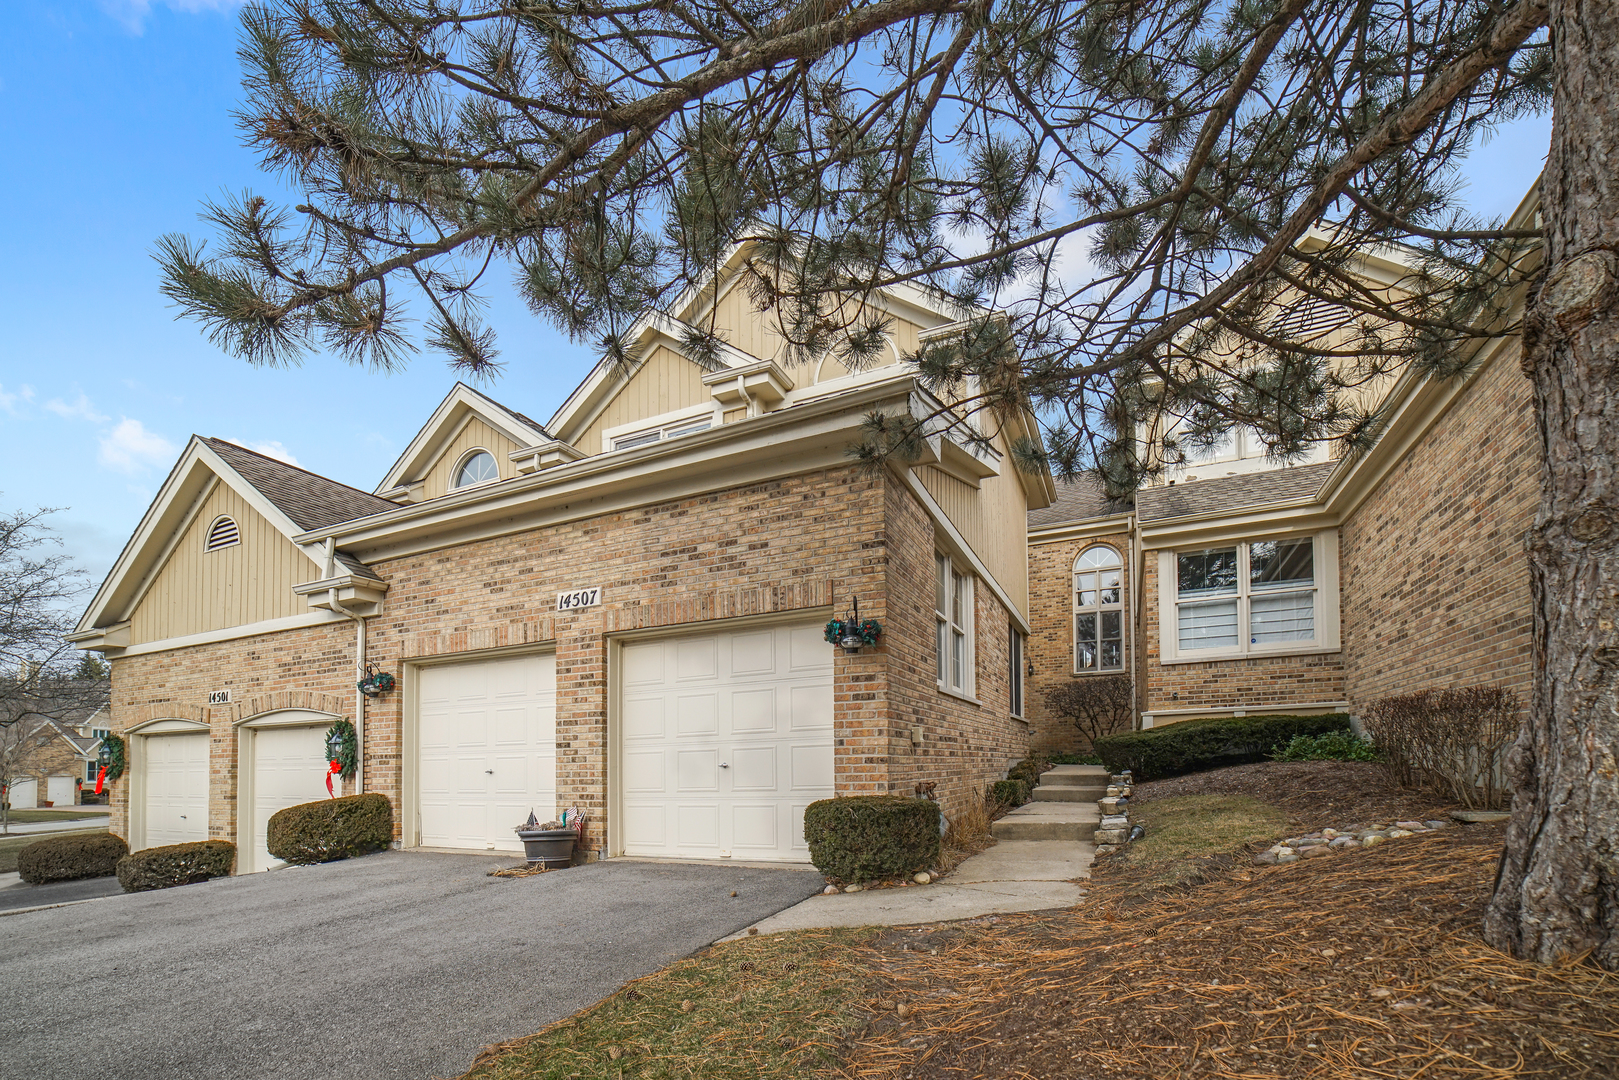 14507 Golf Road, Orland Park, IL 60462